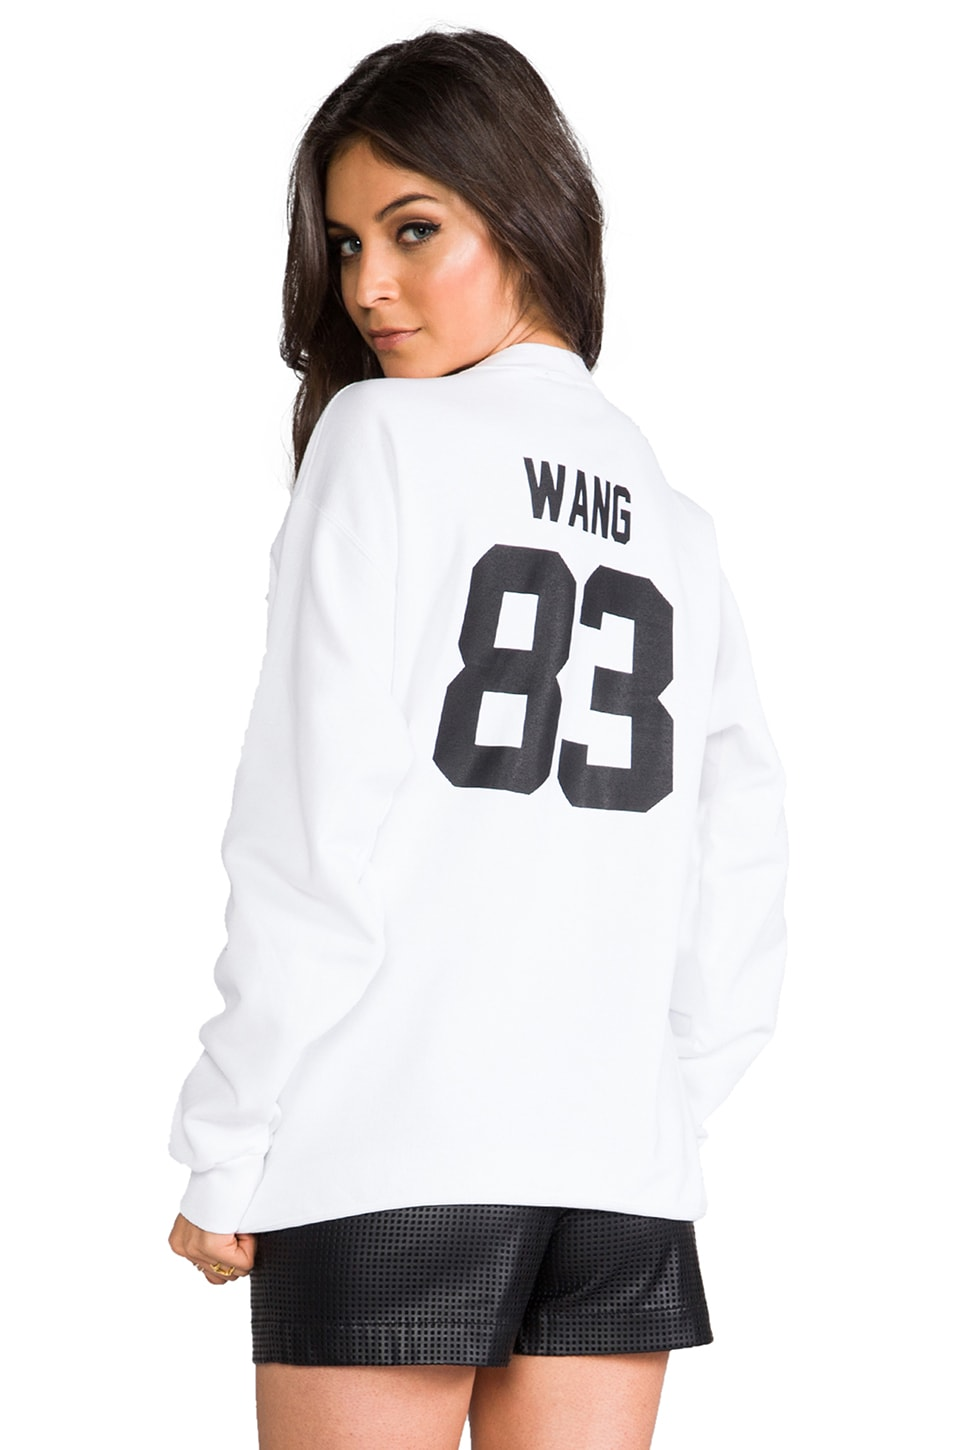 LPD New York LPD NYC Wang Crew Neck Sweatshirt in White